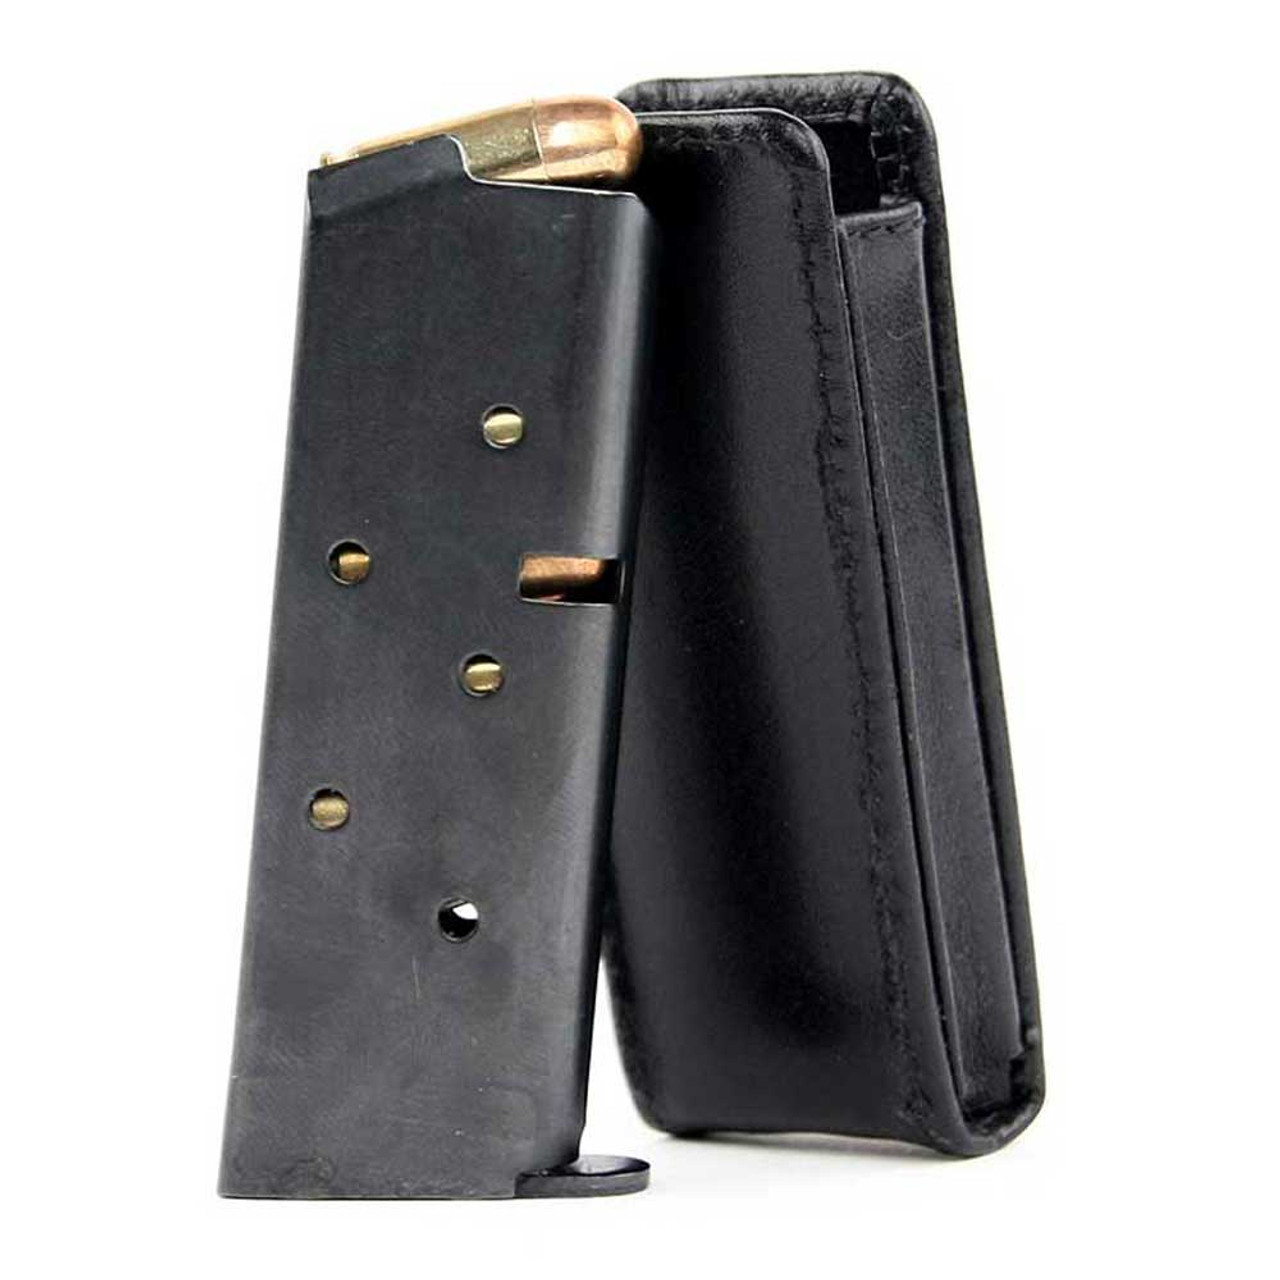 Masterpiece Arms .380 Magazine Pocket Protector